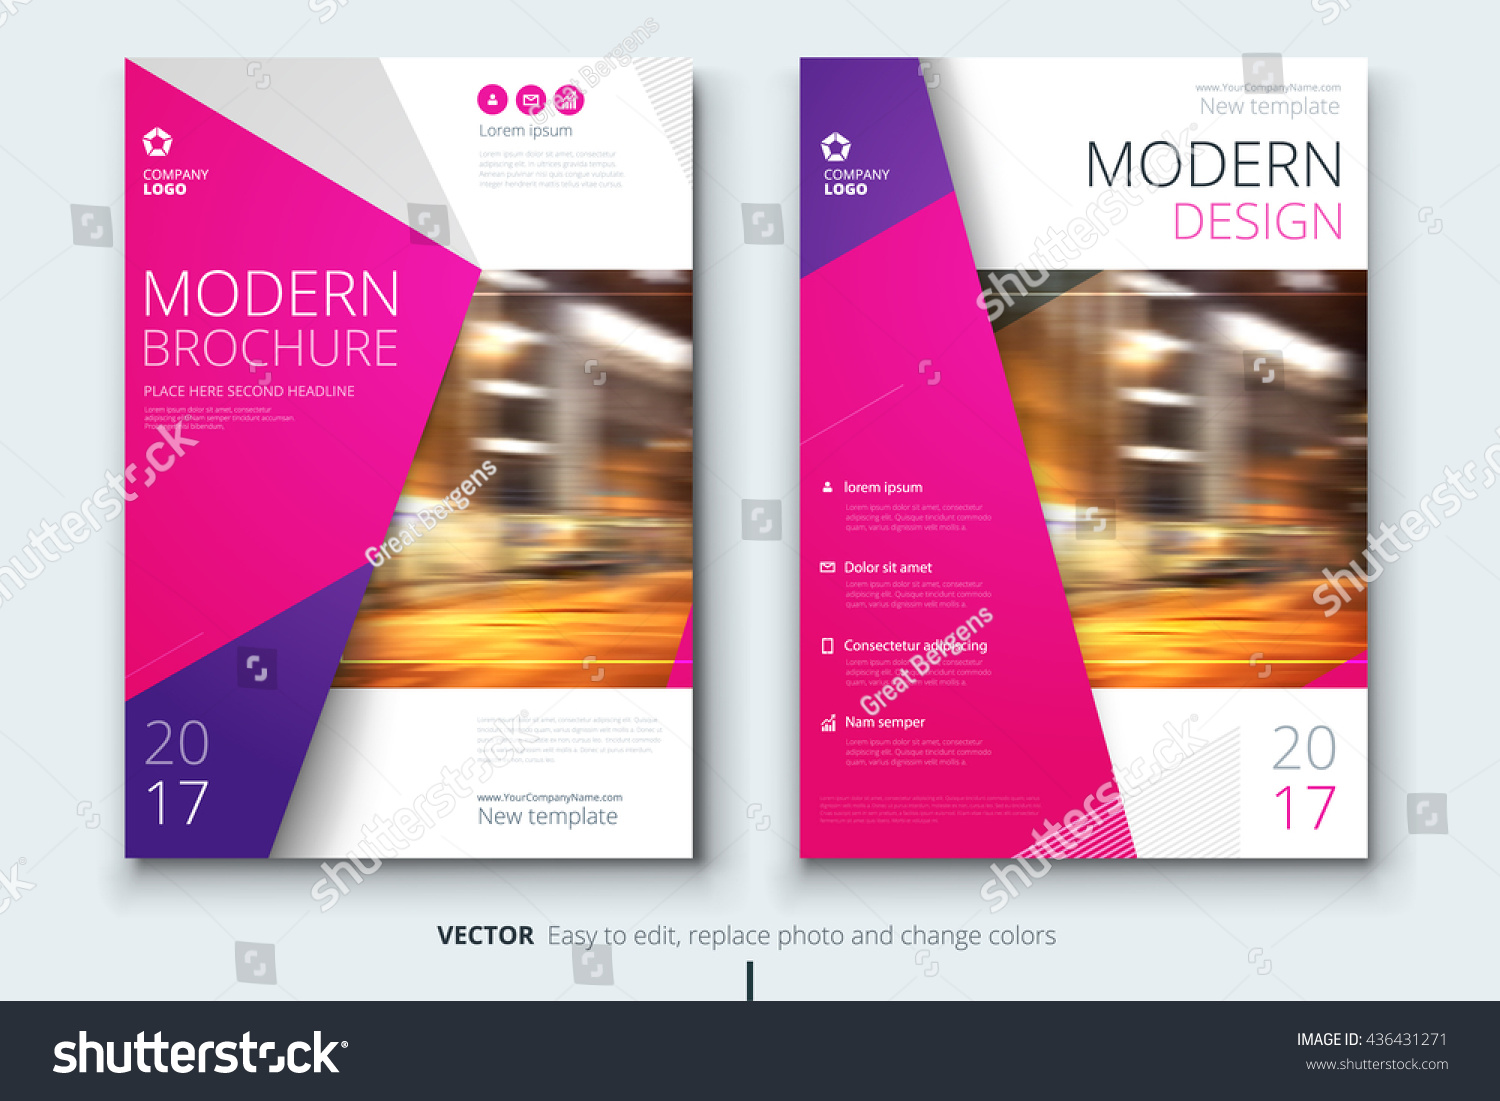 Elements of a poster design - Poster Design Corporate Business Template For Brochure Annual Report Catalog Magazine